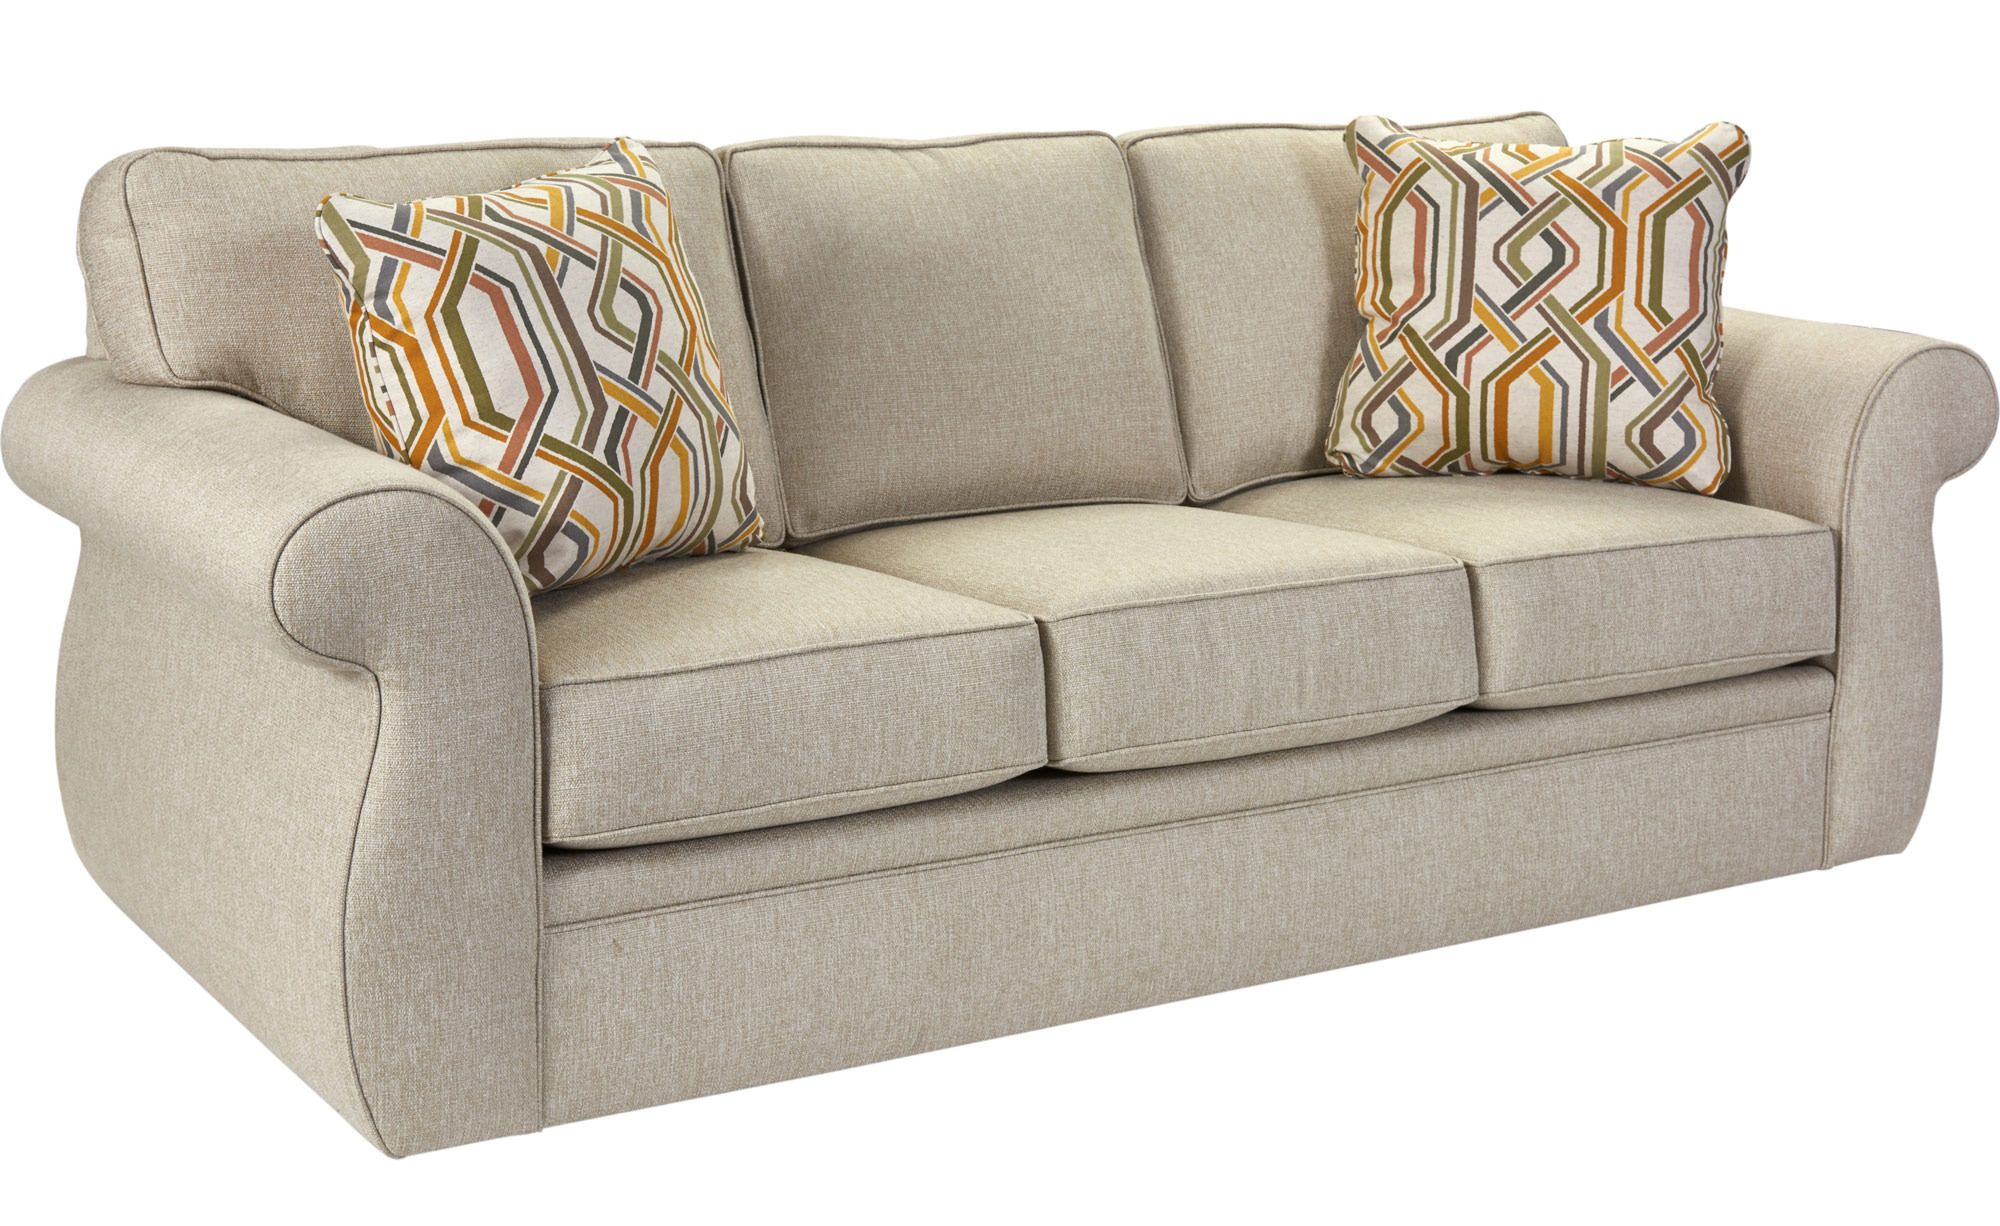 Veronica Sunbrella Sofa By Broyhill Home Gallery Stores Ideas For The House Pinterest